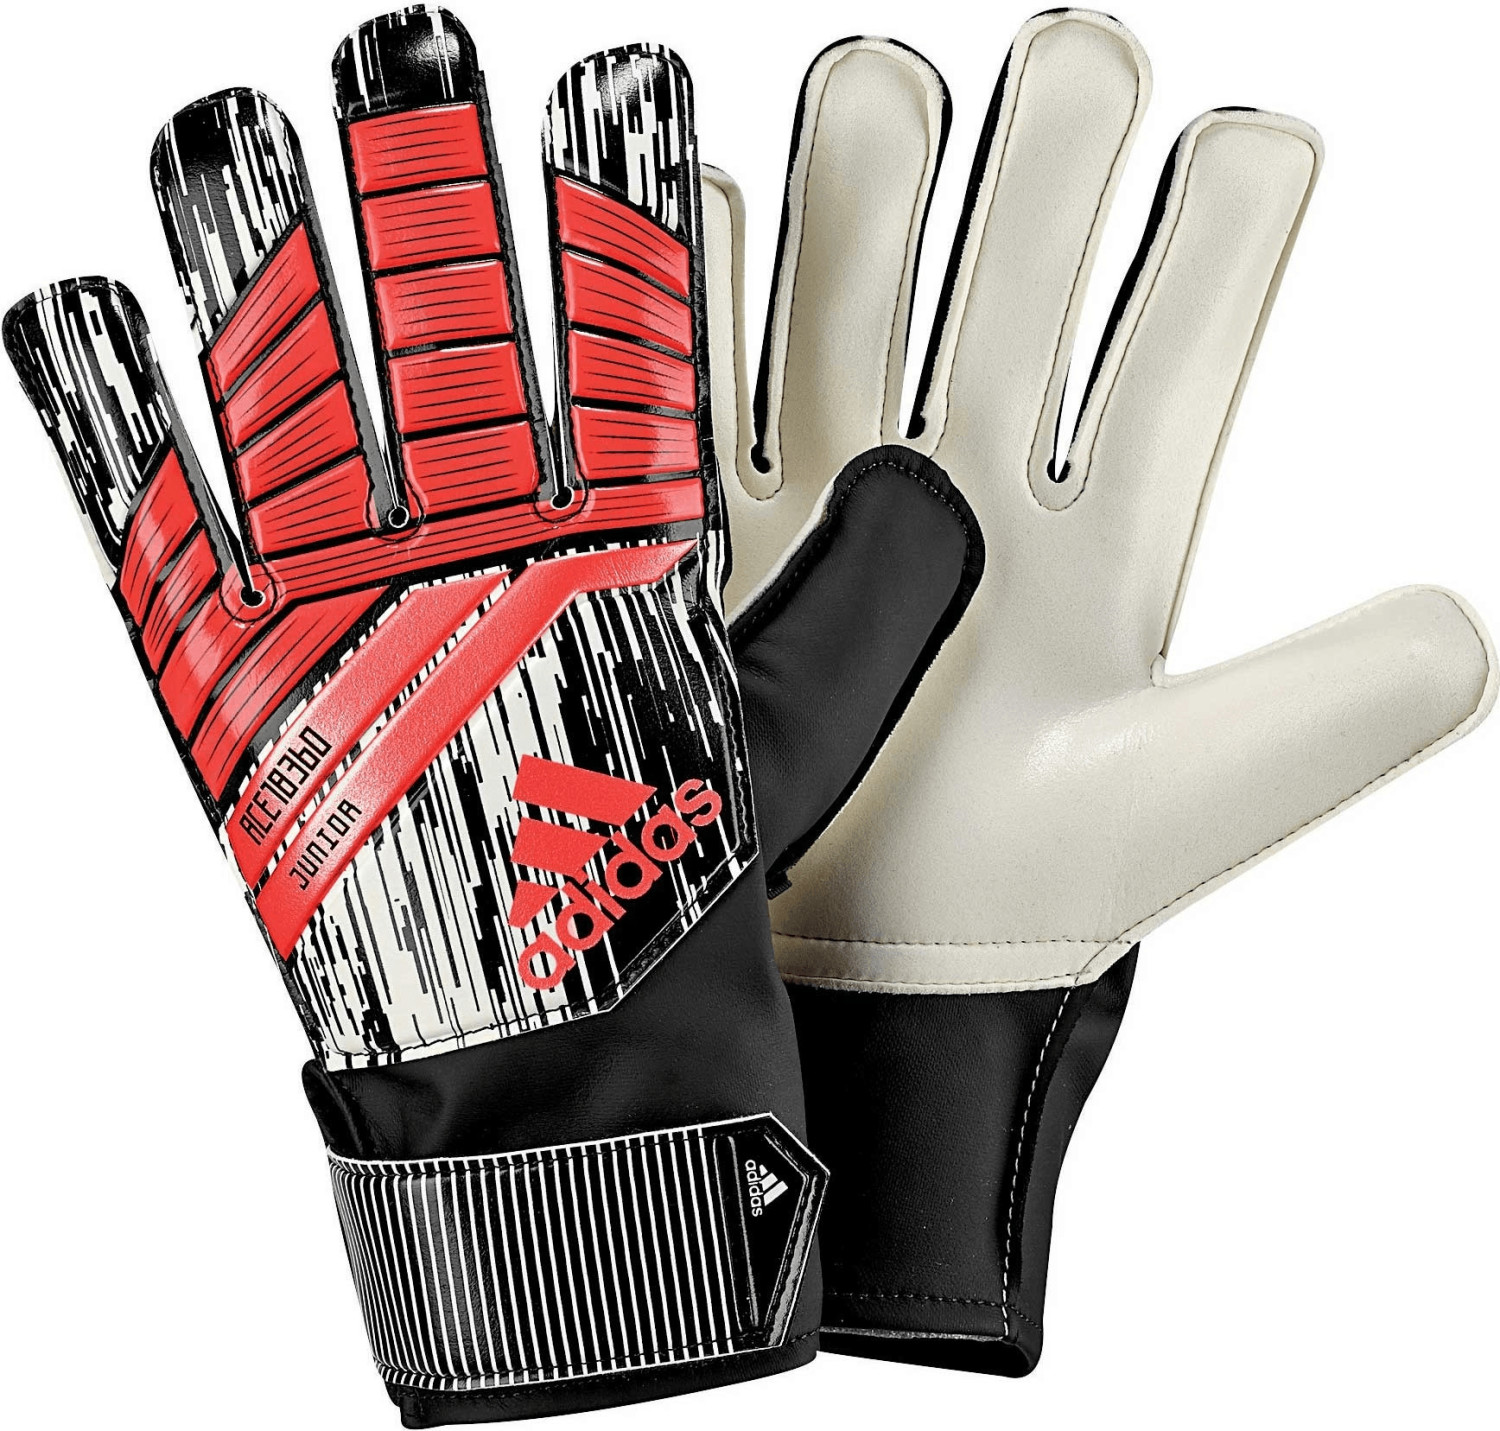 Adidas Predator Junior Manuel Neuer solar red/black